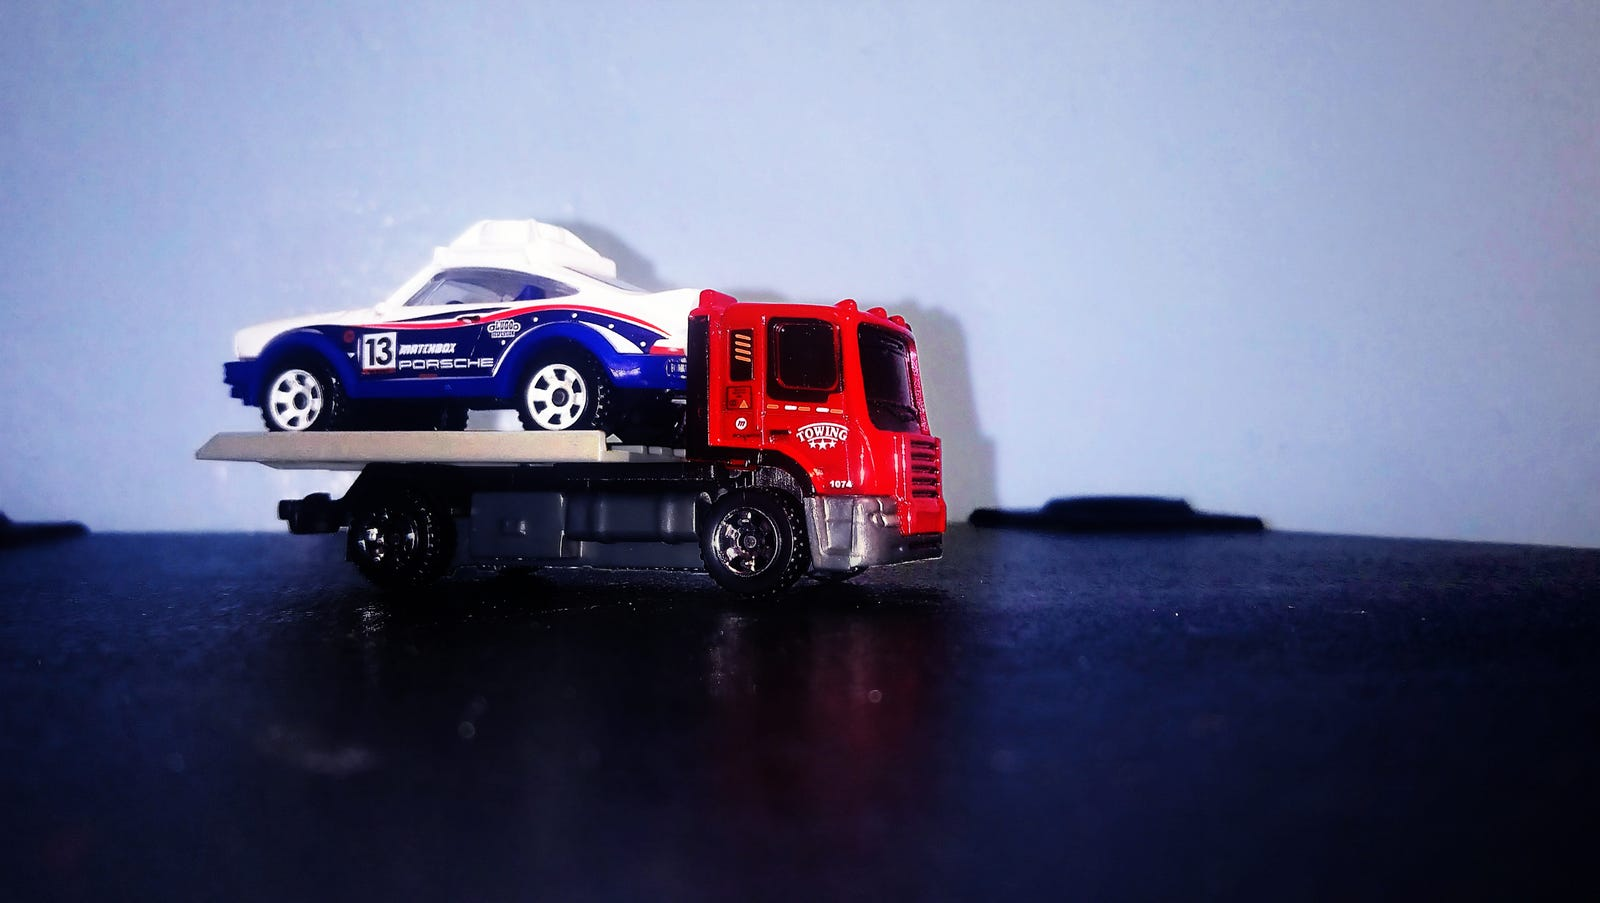 What a miracle! Both the Porsche and the flatbed towing lorry look great, though there are drawbacks as the next slides can attest.